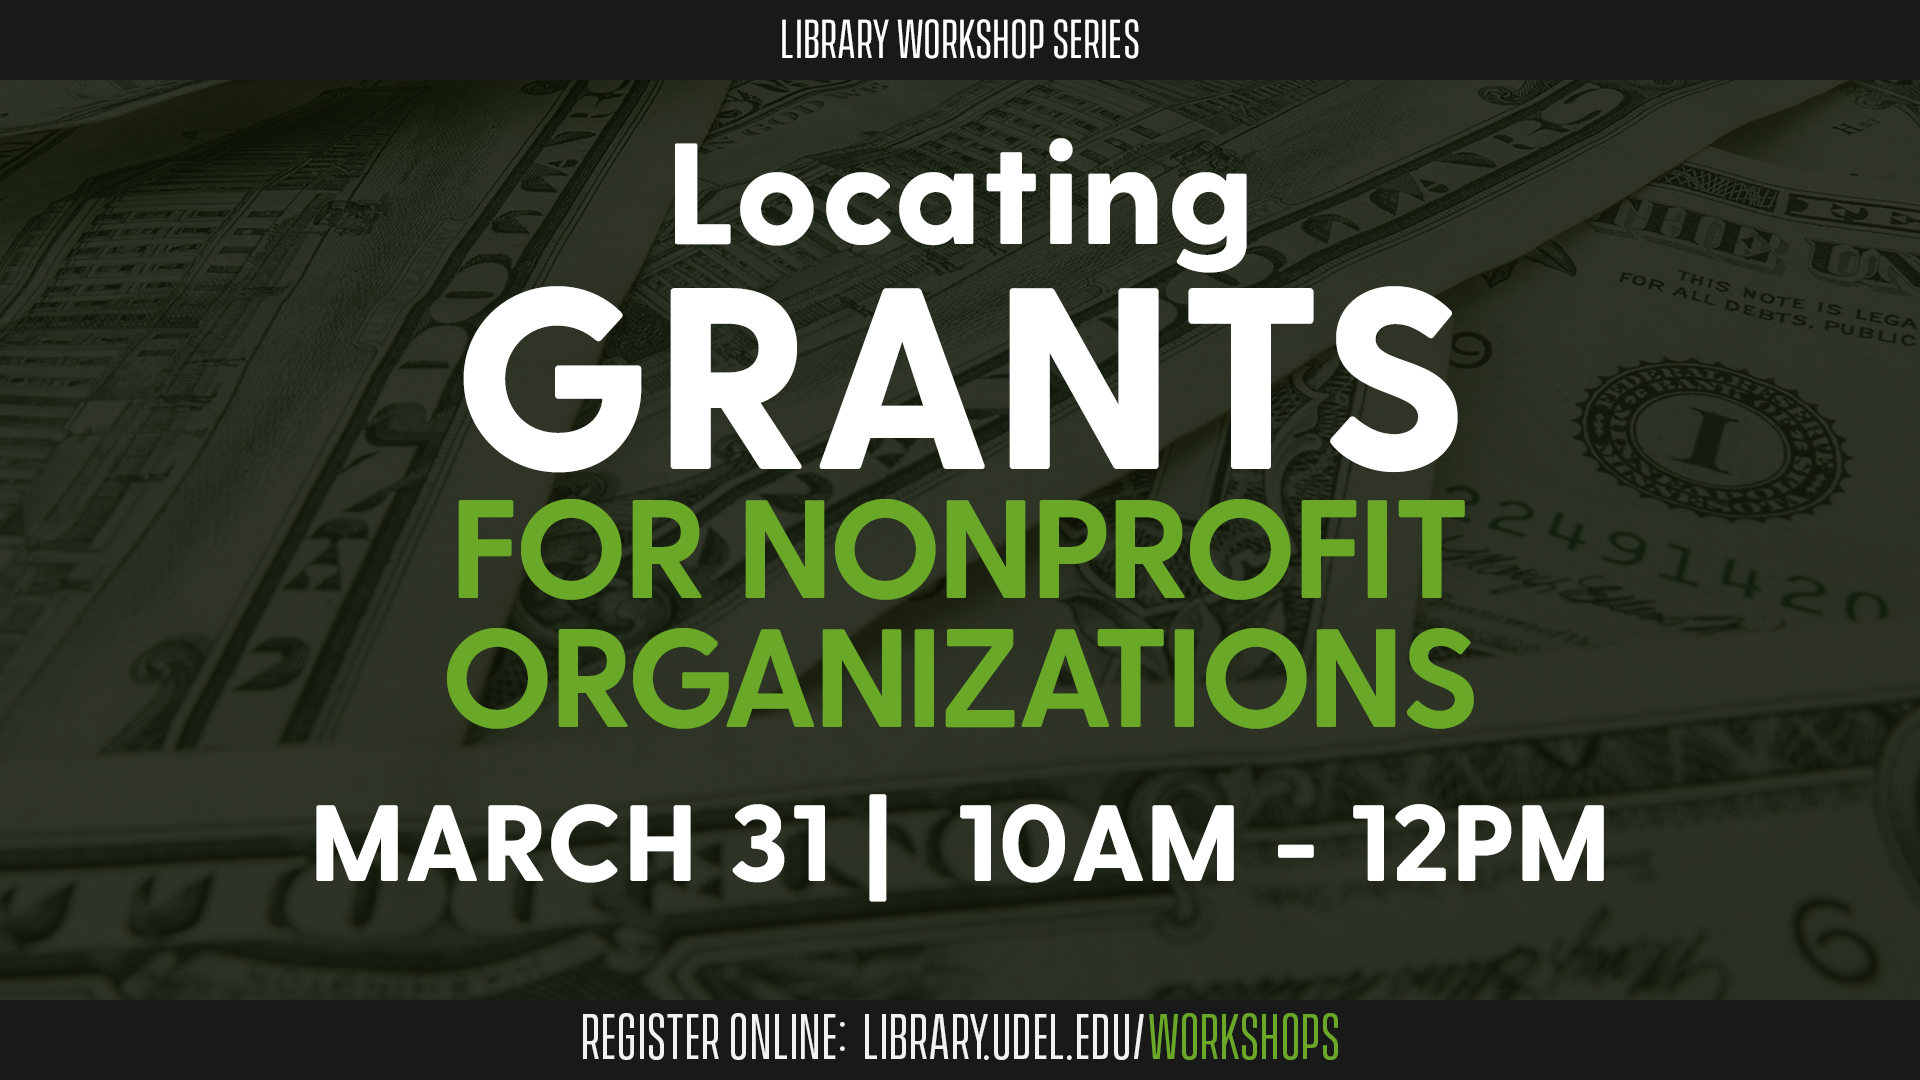 Promotional image for Locating Grants for Nonprofit Organizations